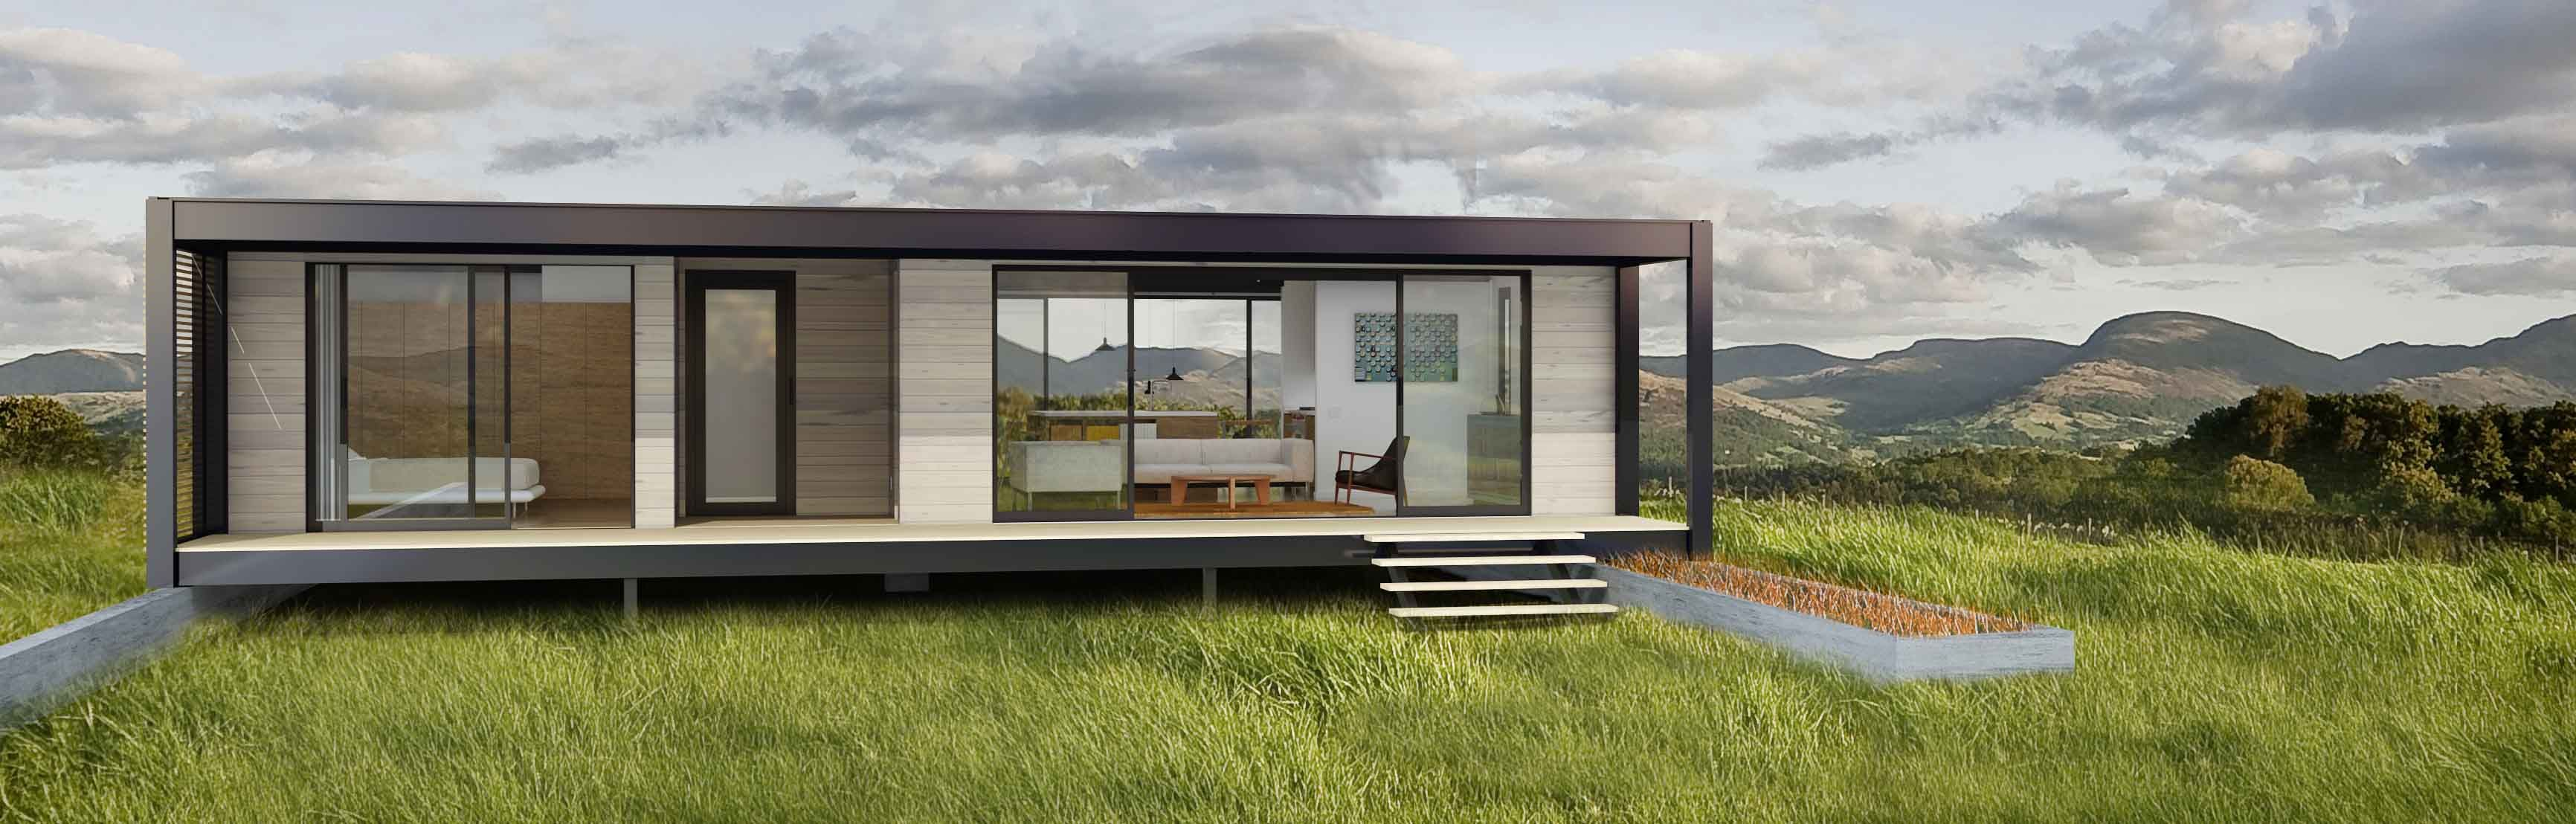 The Excellent Prefab Homes Affordable Awesome Ideas For You ...